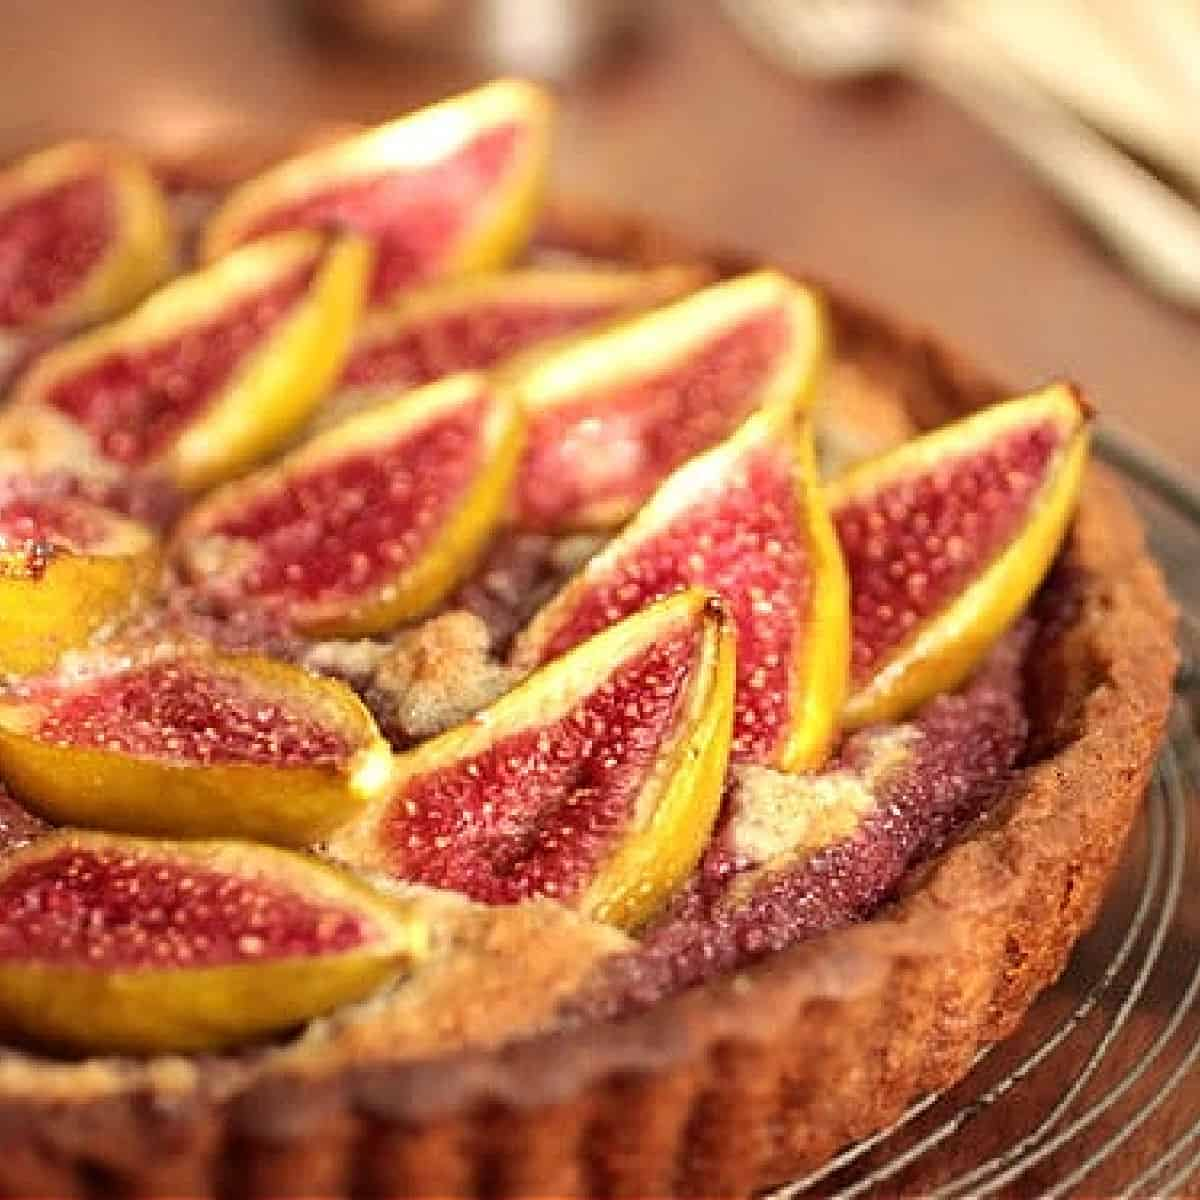 Partial view of fresh fig tart on wooden table